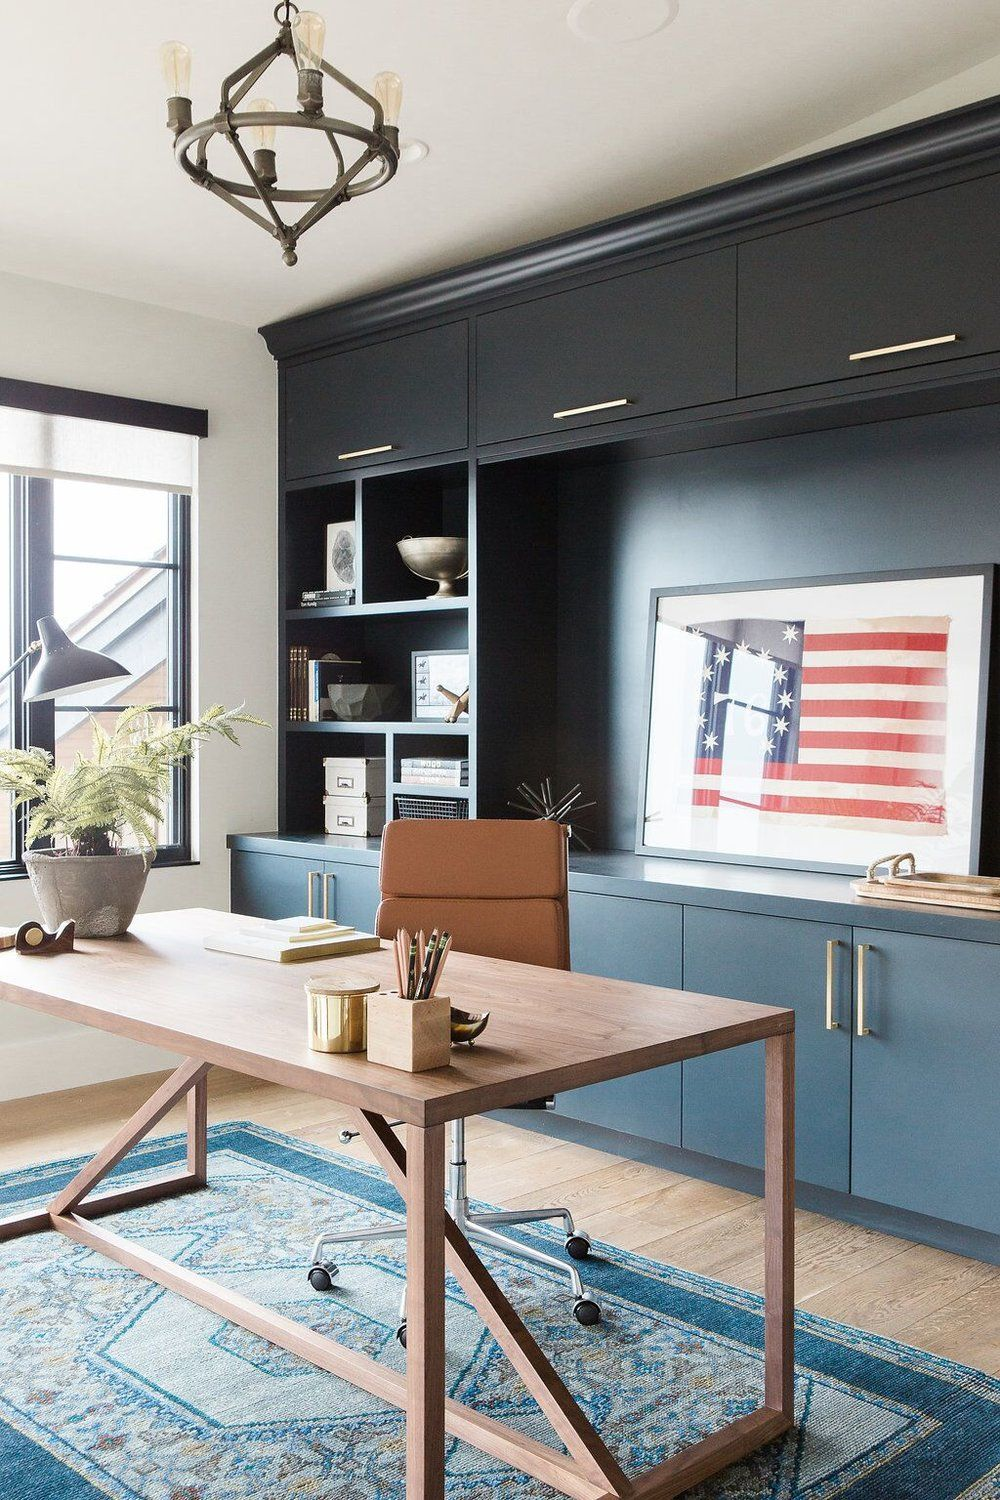 Modern Office Shelving In Modern Office With Open Shelving Vintage Rug And Dark Blue Cabinets Promontory Project Downstairs Office Bridgeport Lakehouse